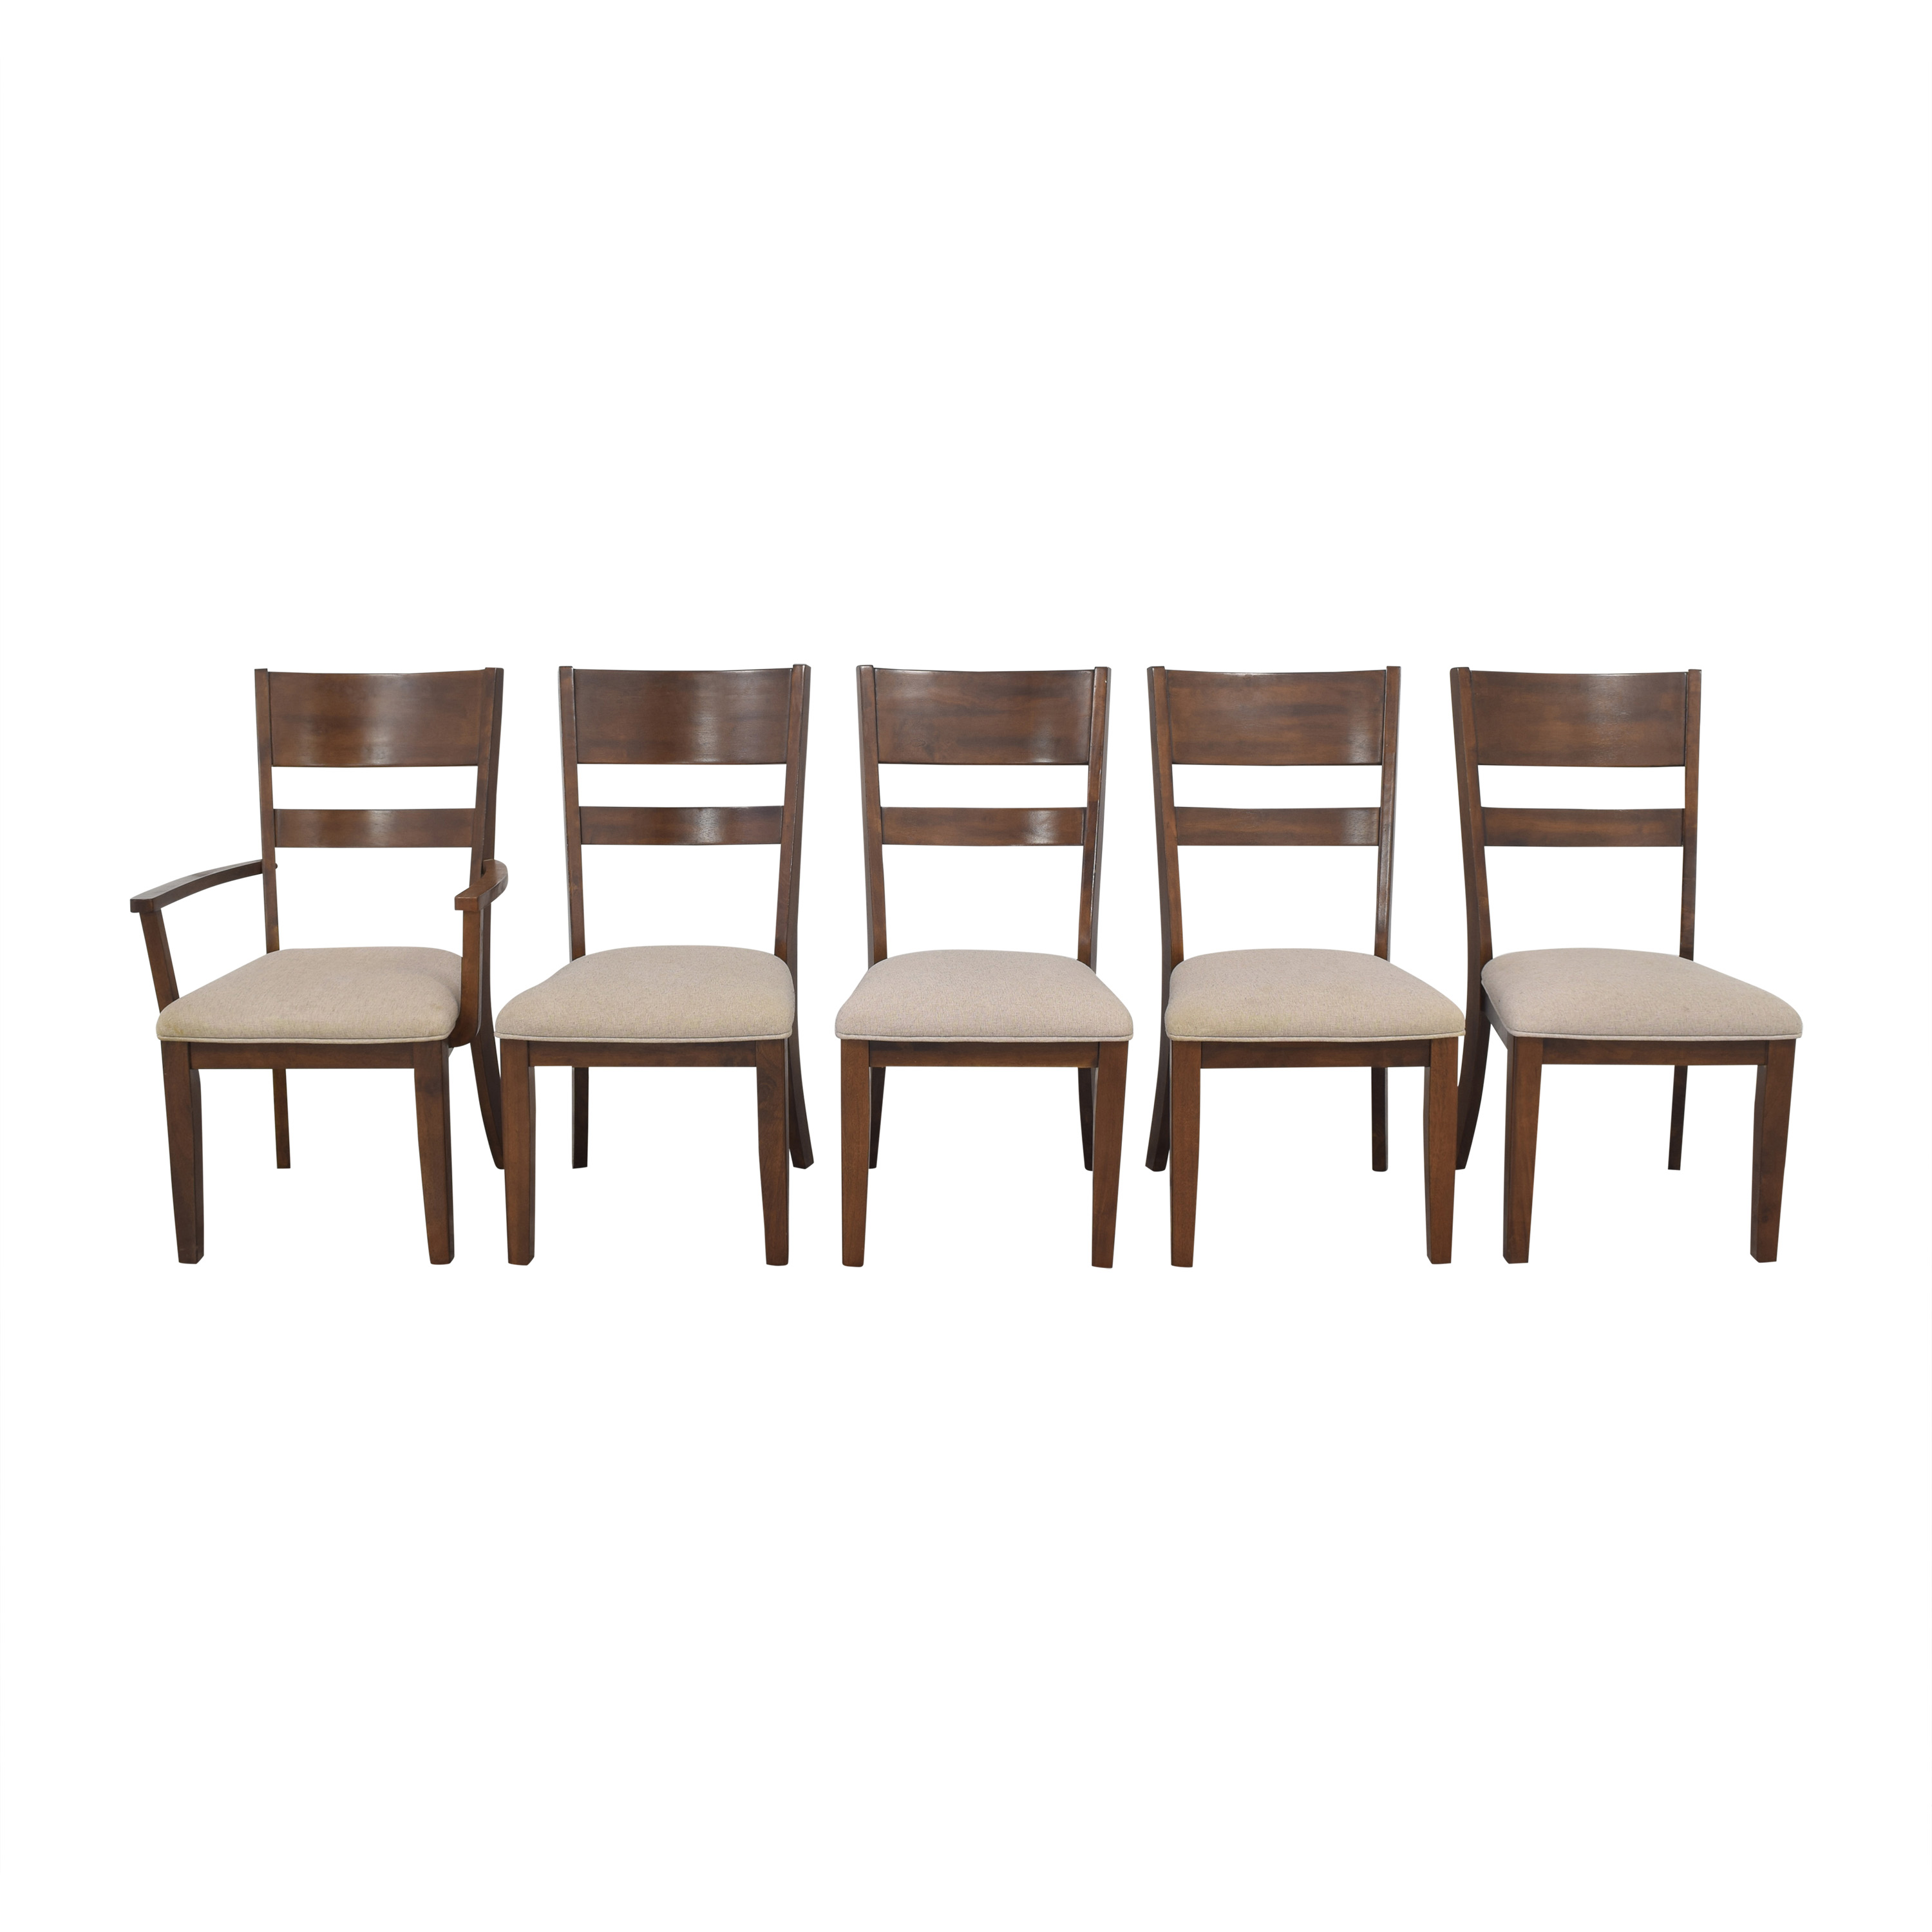 Macy's Dining Chairs with Cushions Macy's